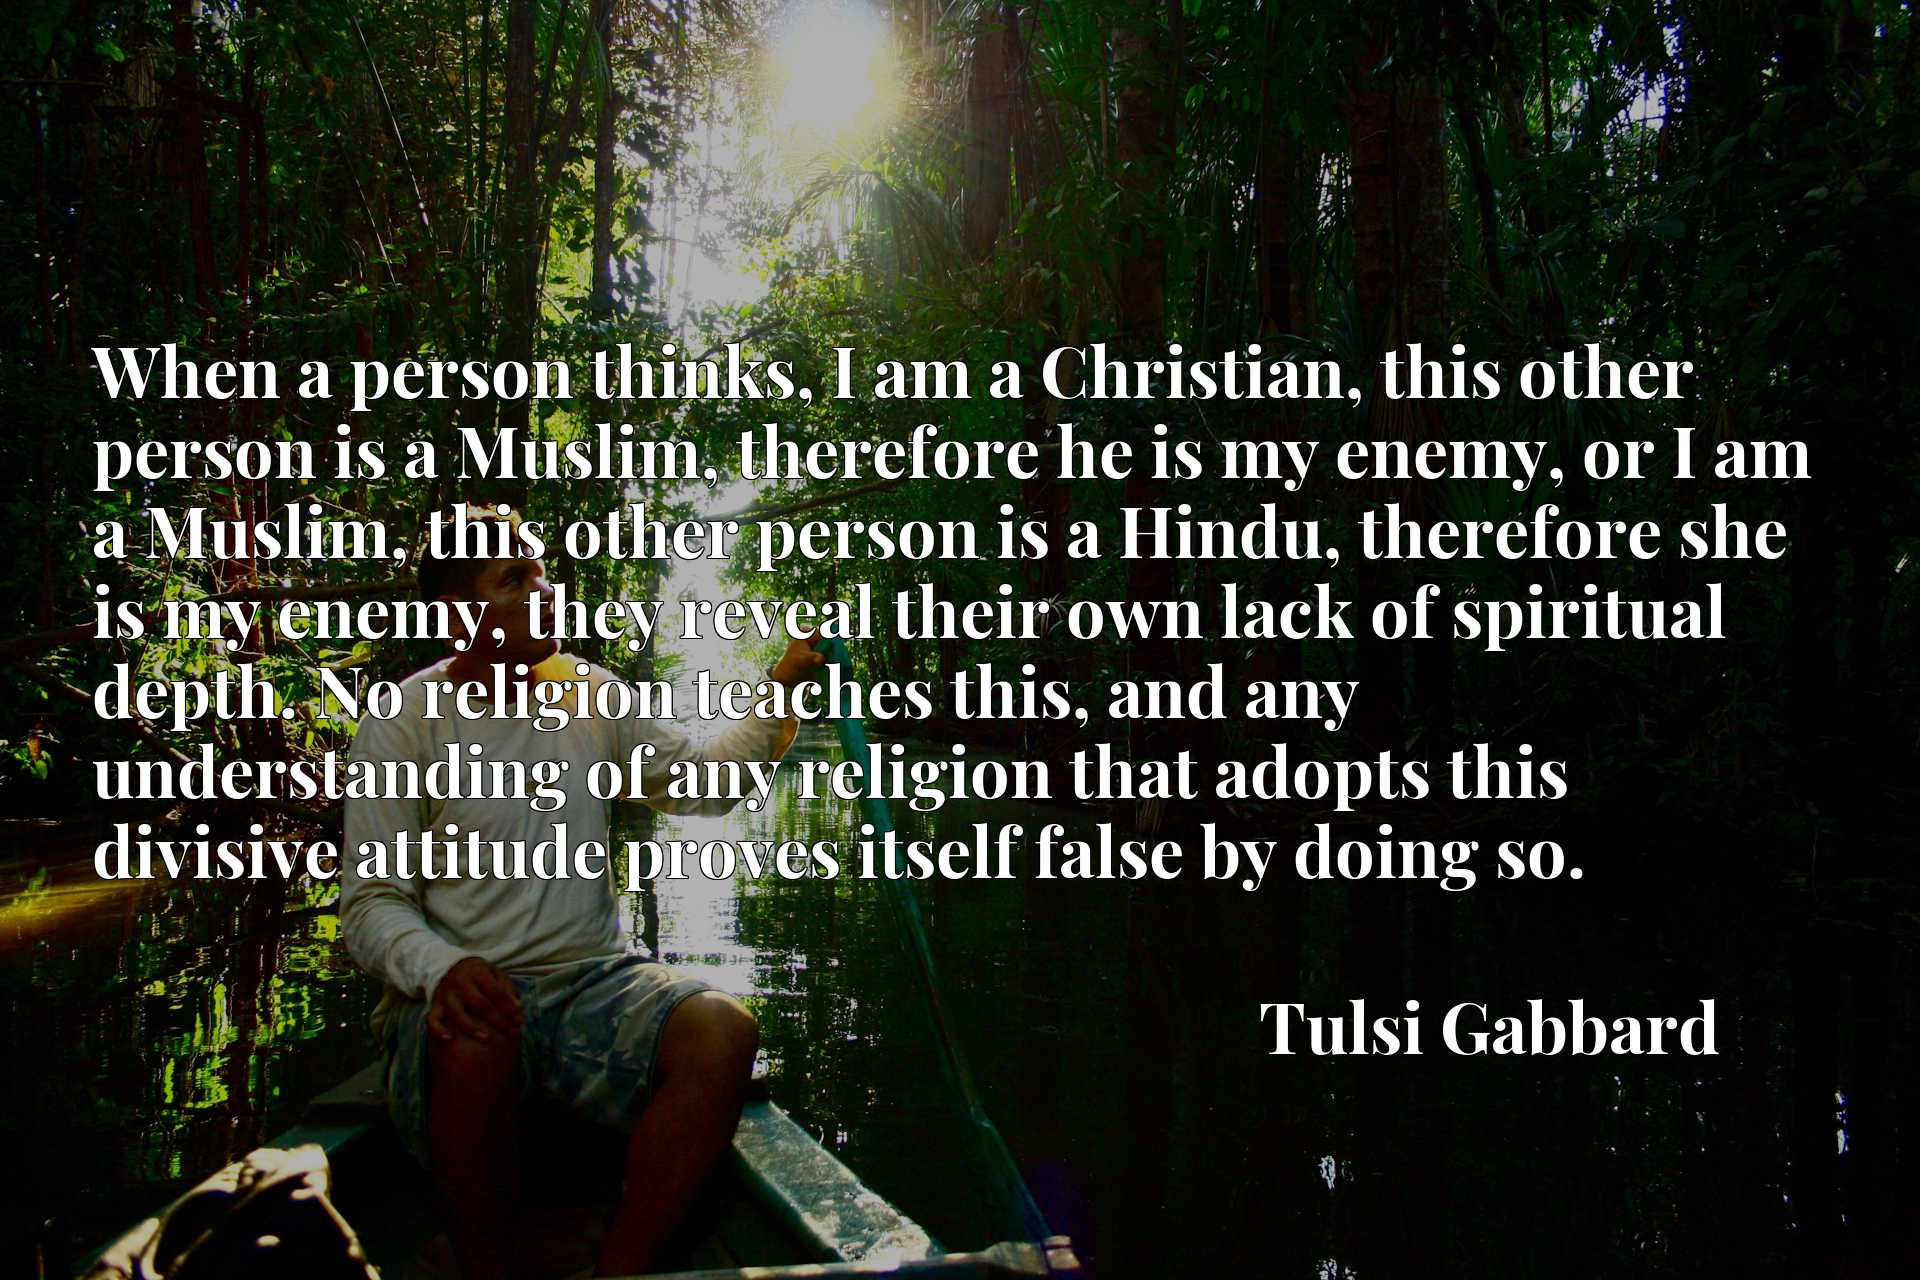 When a person thinks, I am a Christian, this other person is a Muslim, therefore he is my enemy, or I am a Muslim, this other person is a Hindu, therefore she is my enemy, they reveal their own lack of spiritual depth. No religion teaches this, and any understanding of any religion that adopts this divisive attitude proves itself false by doing so.